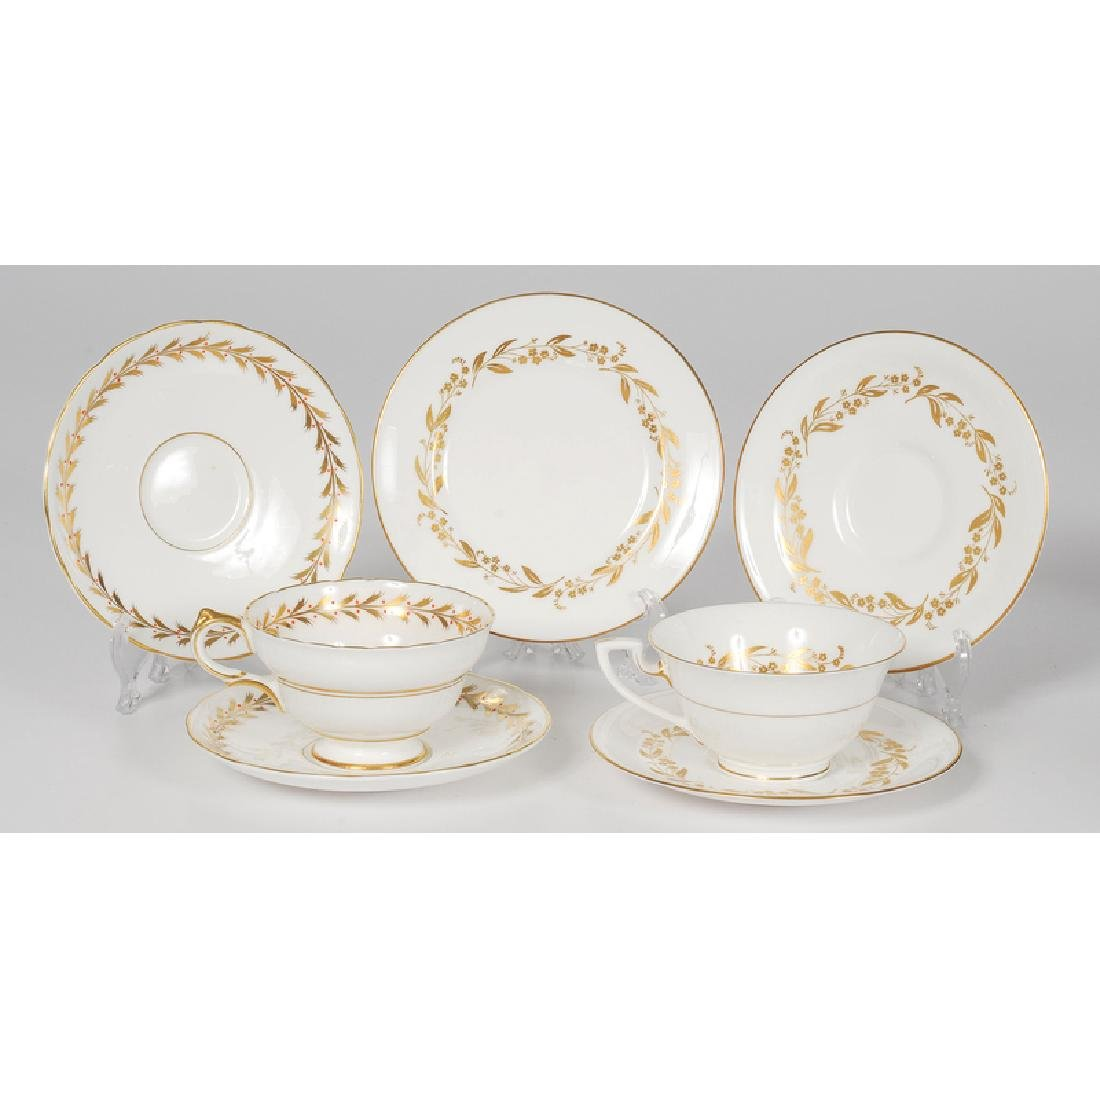 Worcester and Copeland Porcelain Tea Sets